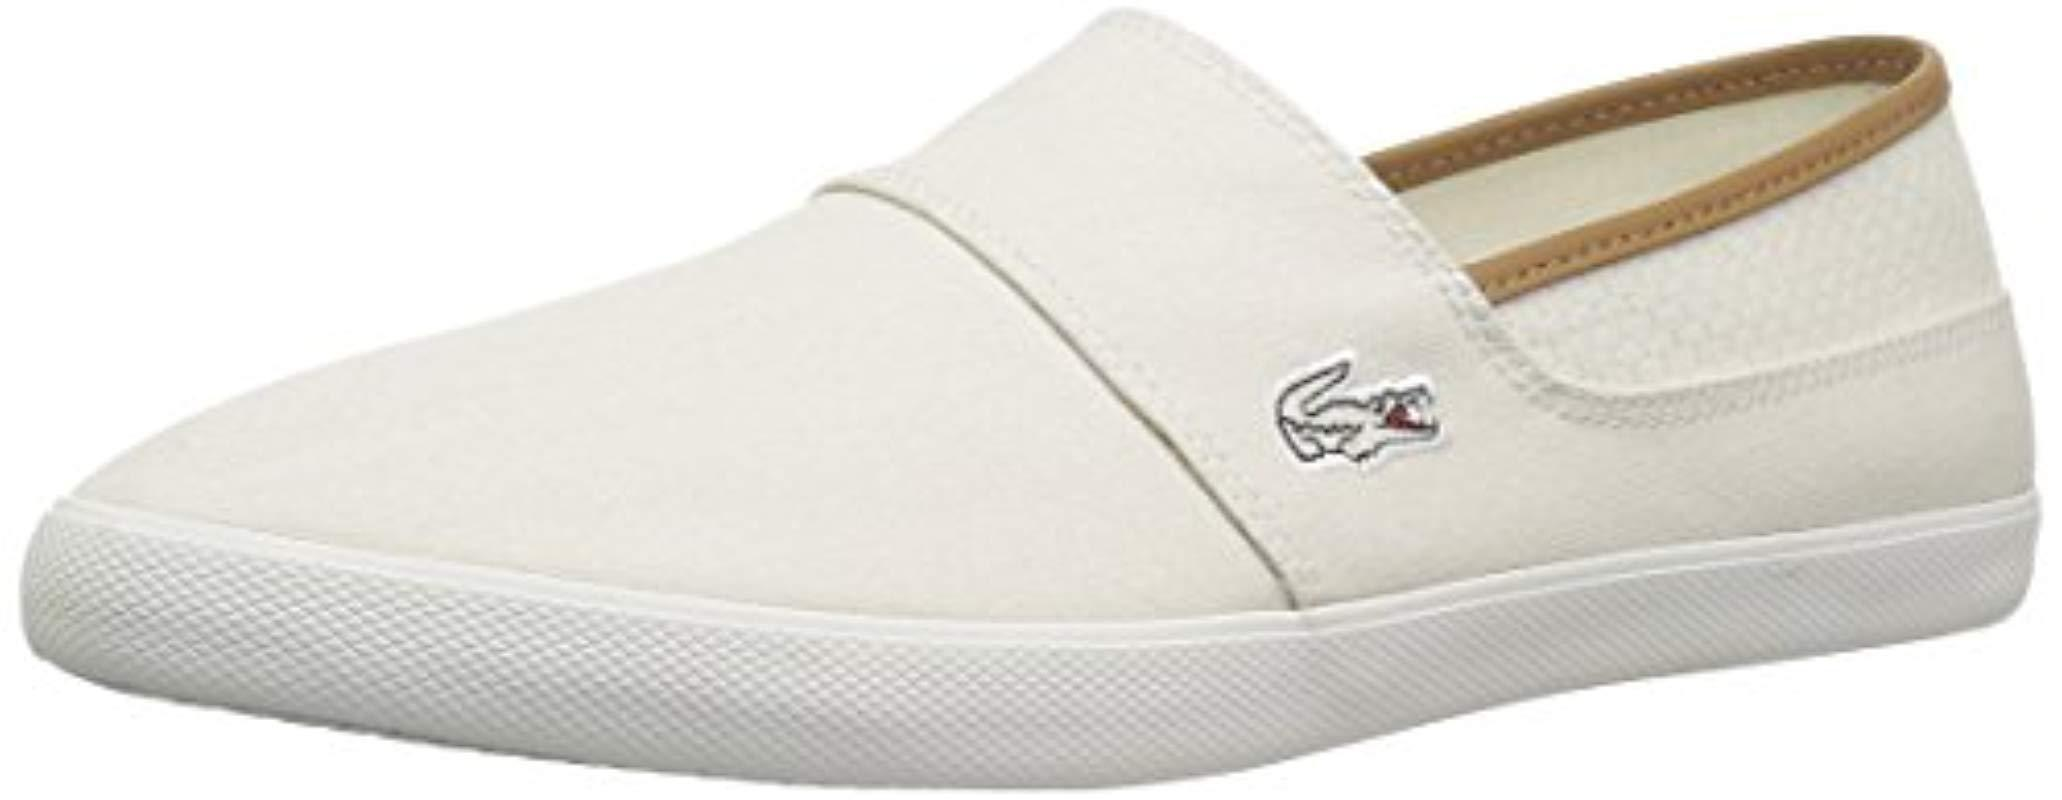 cf259fa6d6e3a8 Lyst - Lacoste  s Marice Slip-ons in White for Men - Save ...